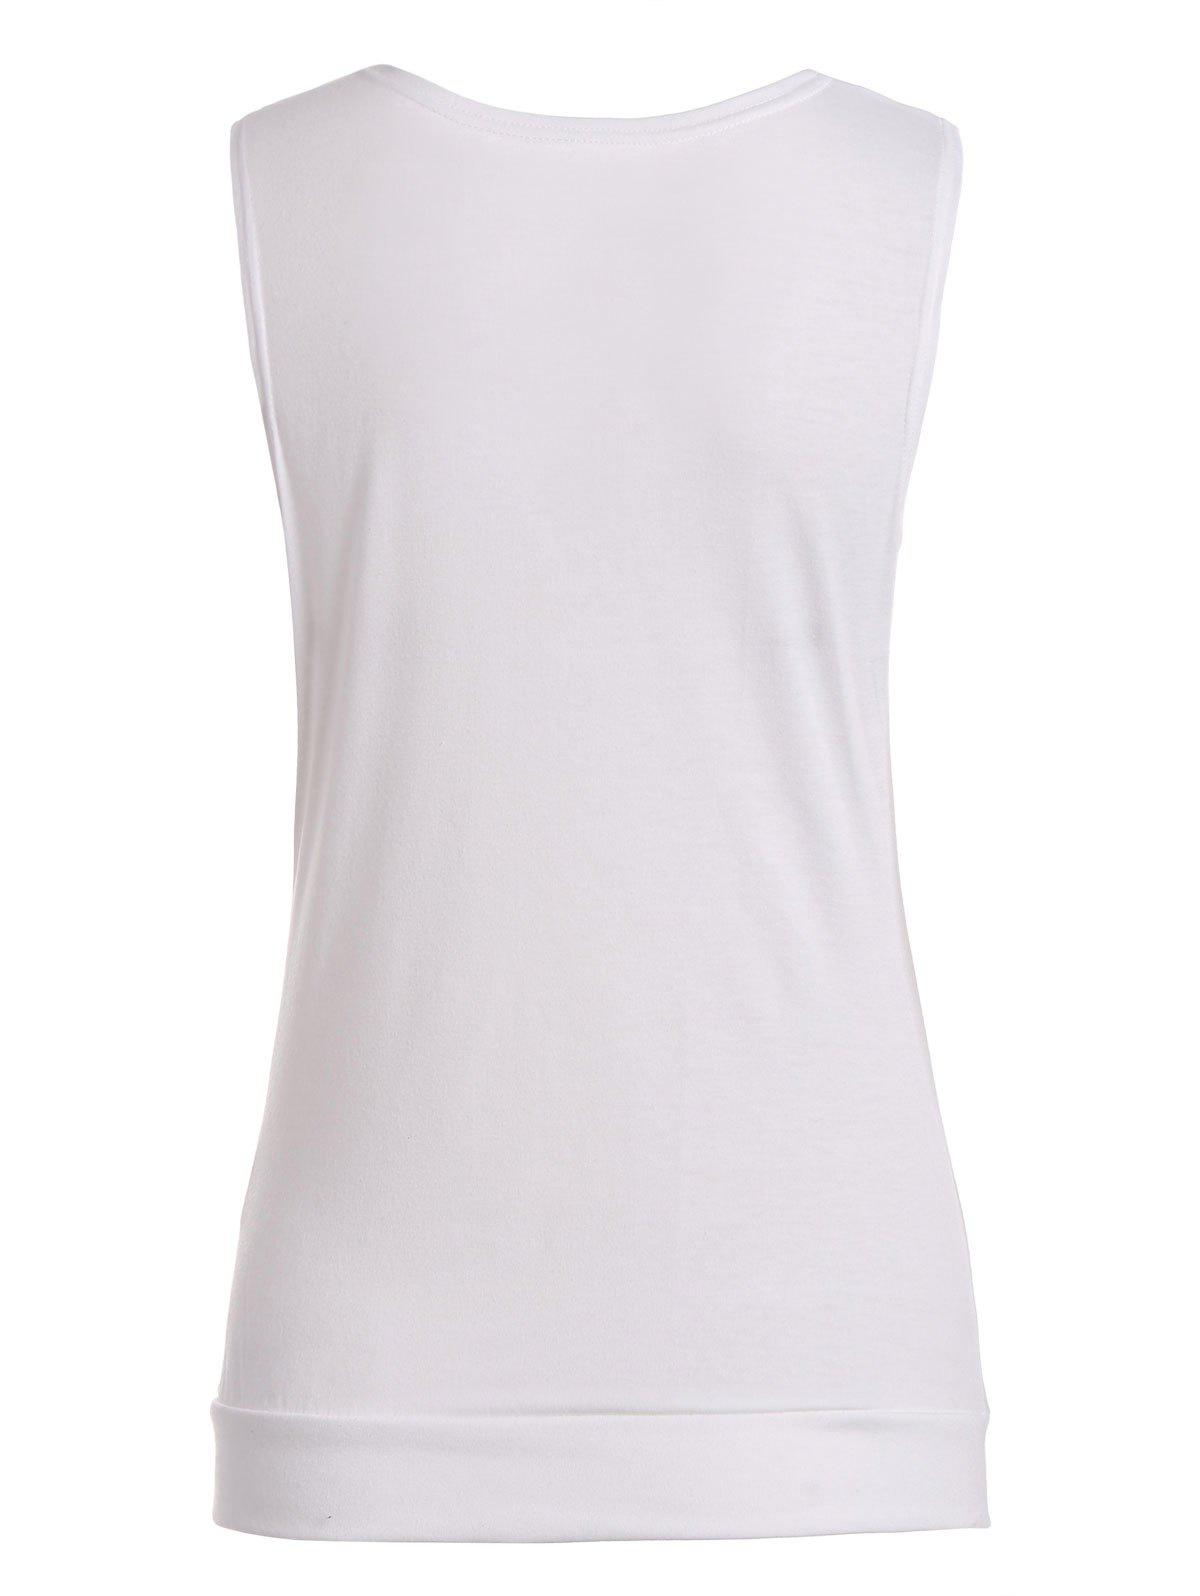 Drape Neck Side Button Tank Top - Blanc M